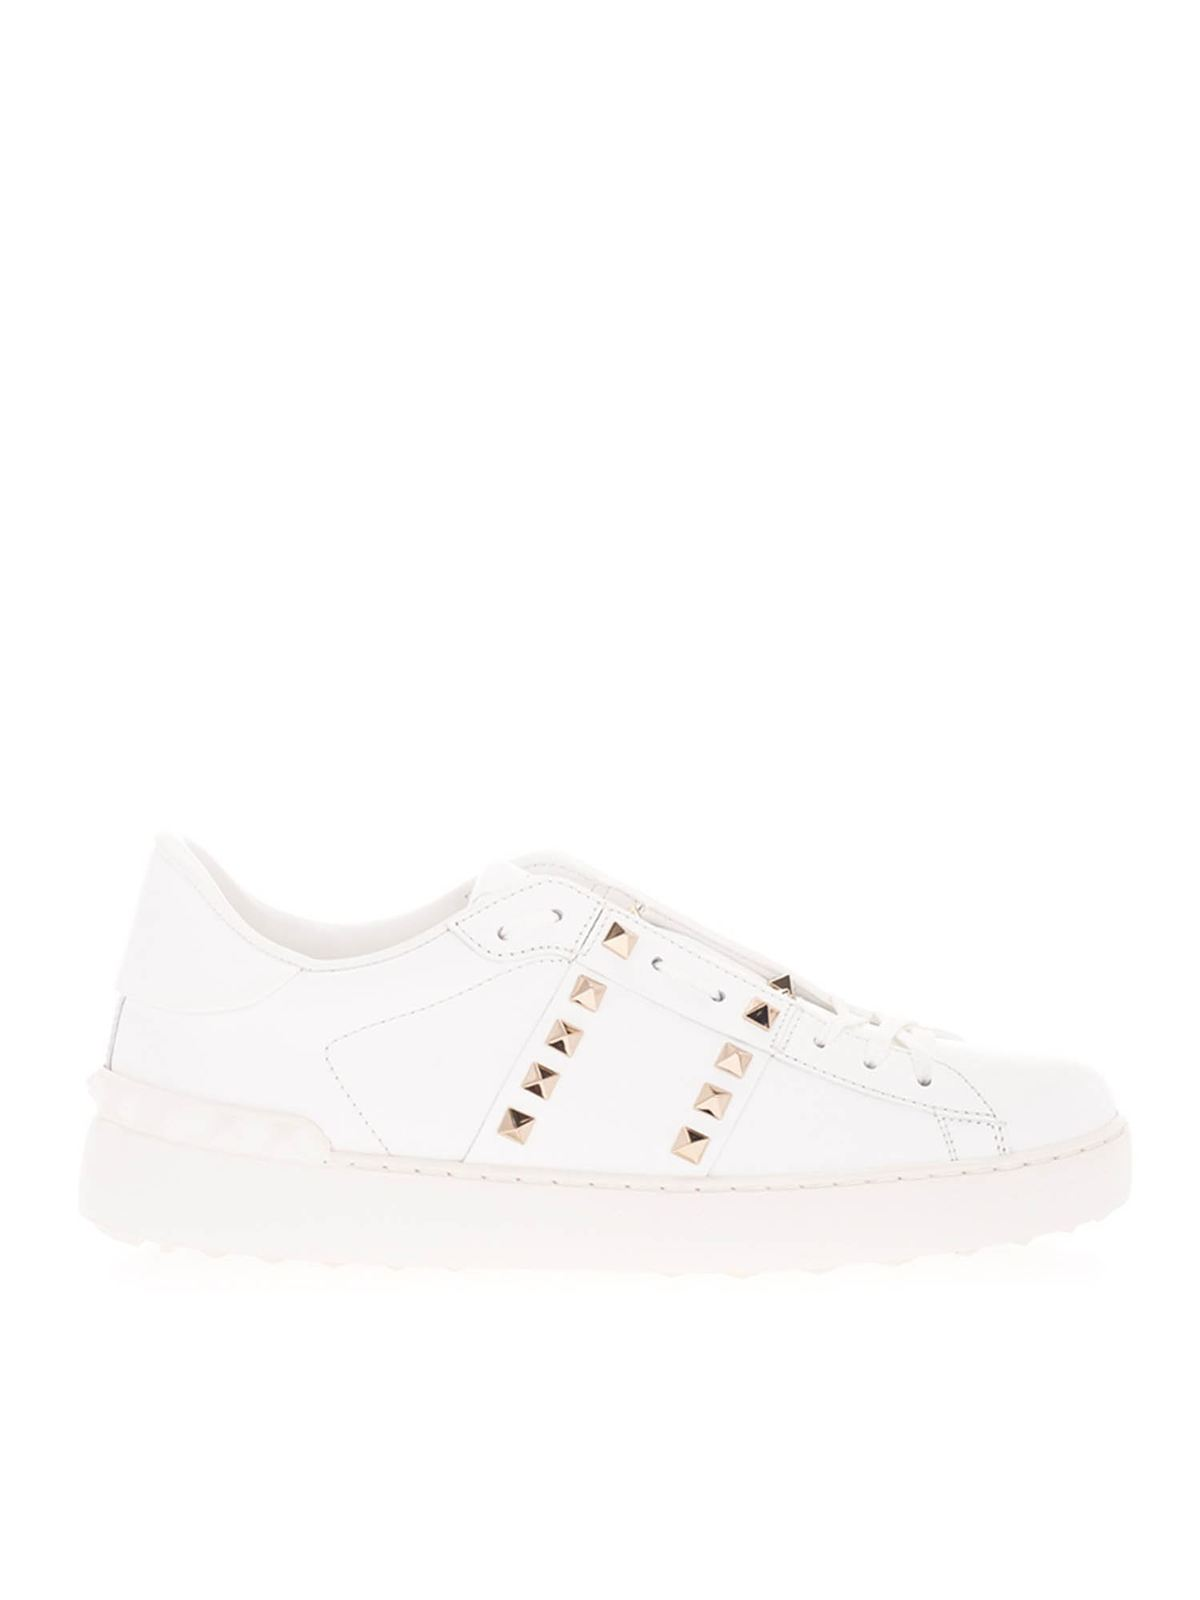 VALENTINO ROCKSTUD UNTITLED SNEAKERS IN WHITE